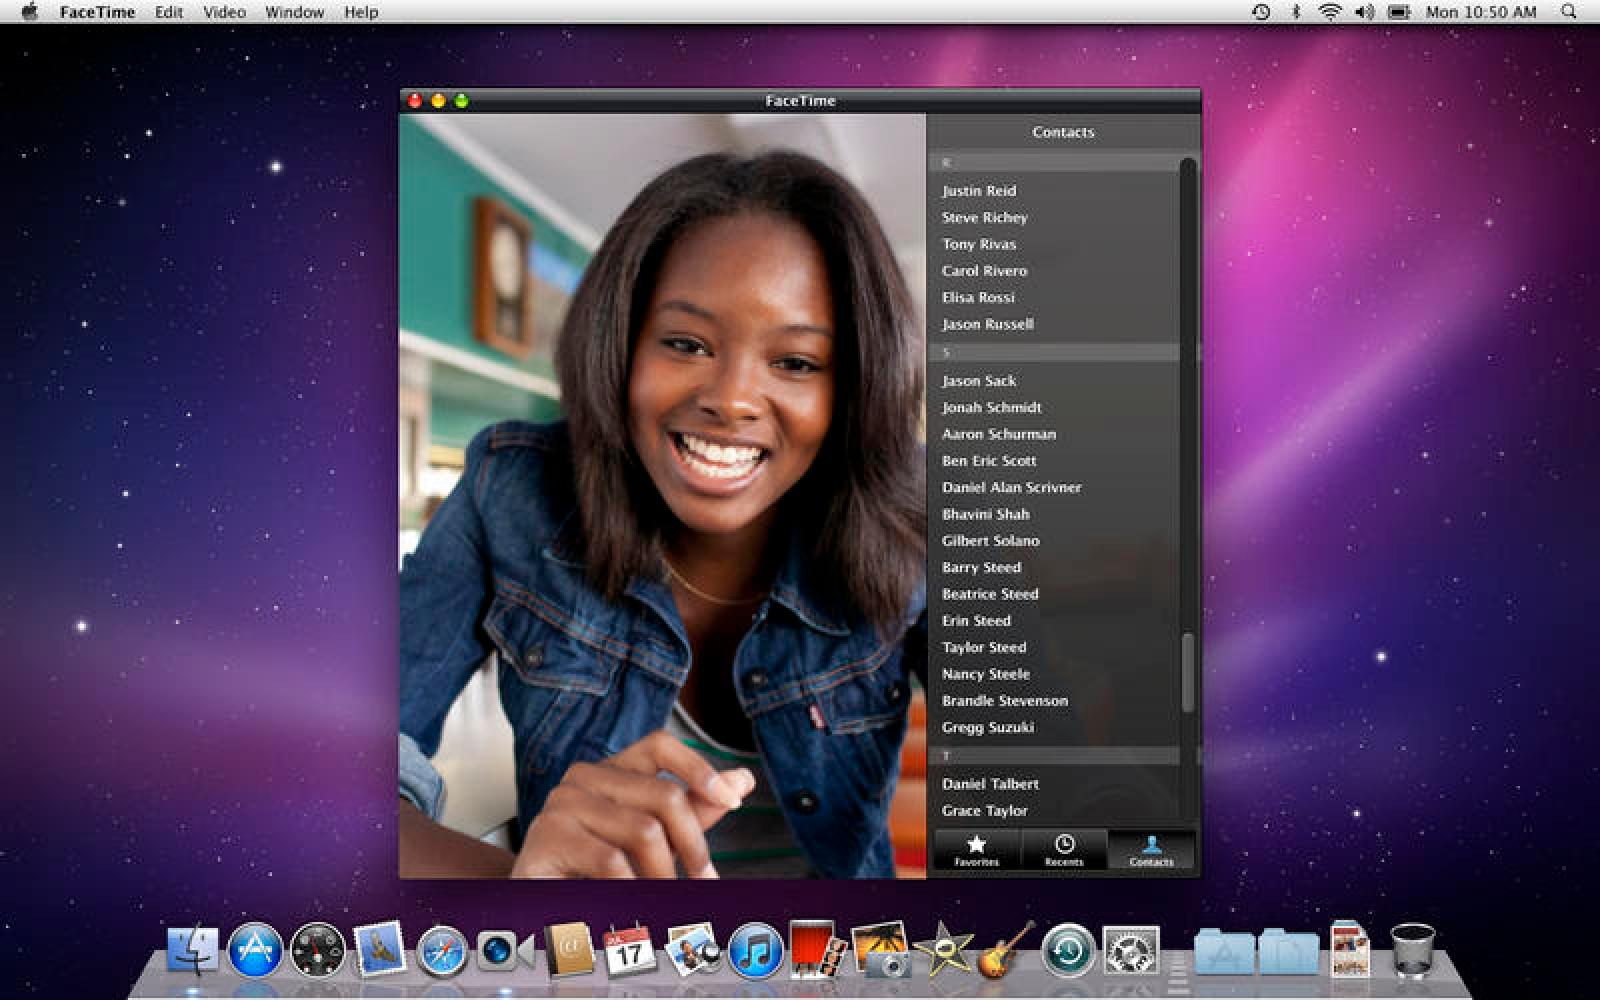 Apple updates standalone FaceTime app for Snow Leopard users with connection bug fix